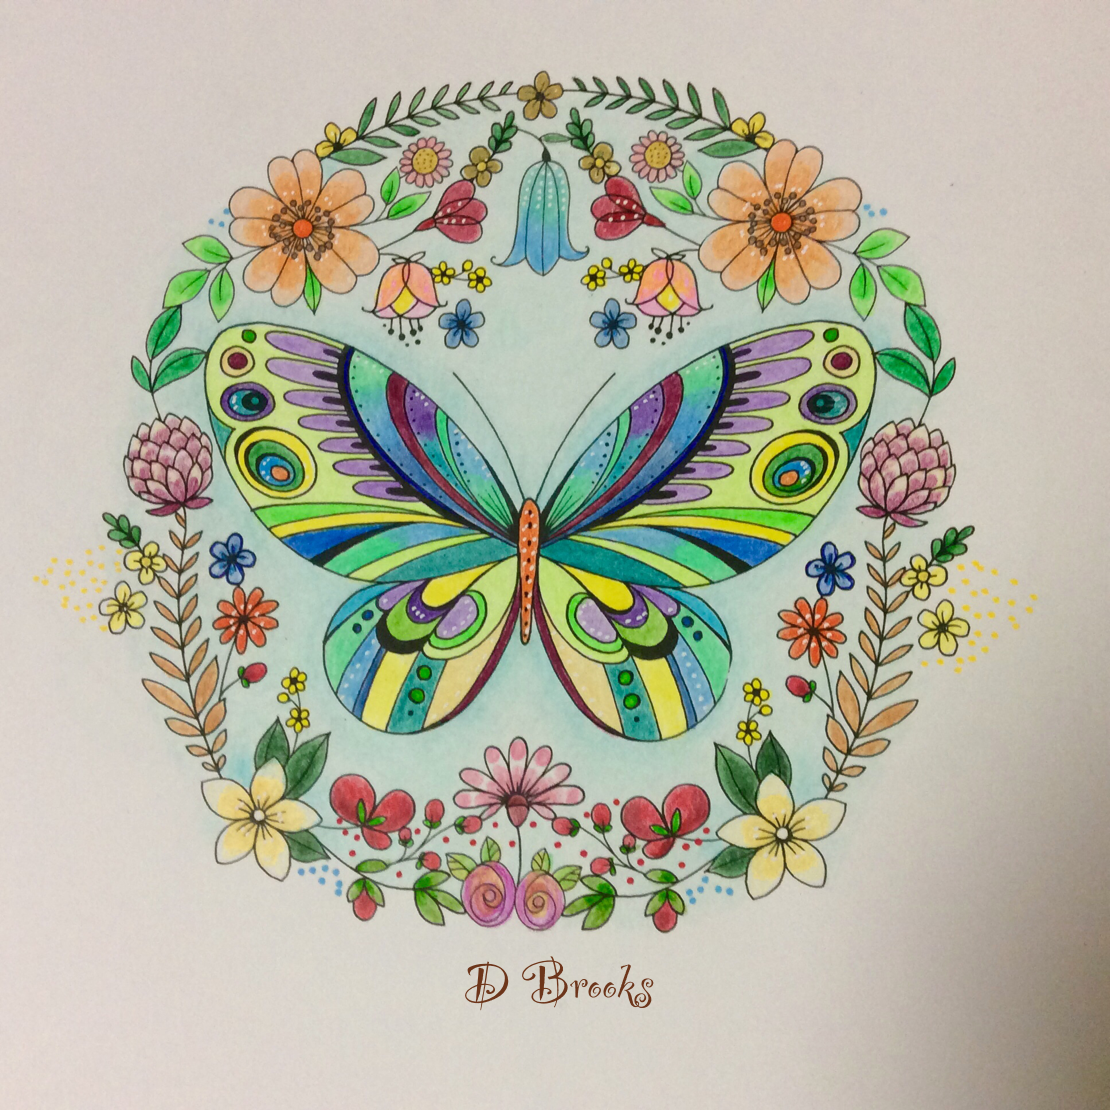 From Joyous Blooms To Colour By Eleri Fowler